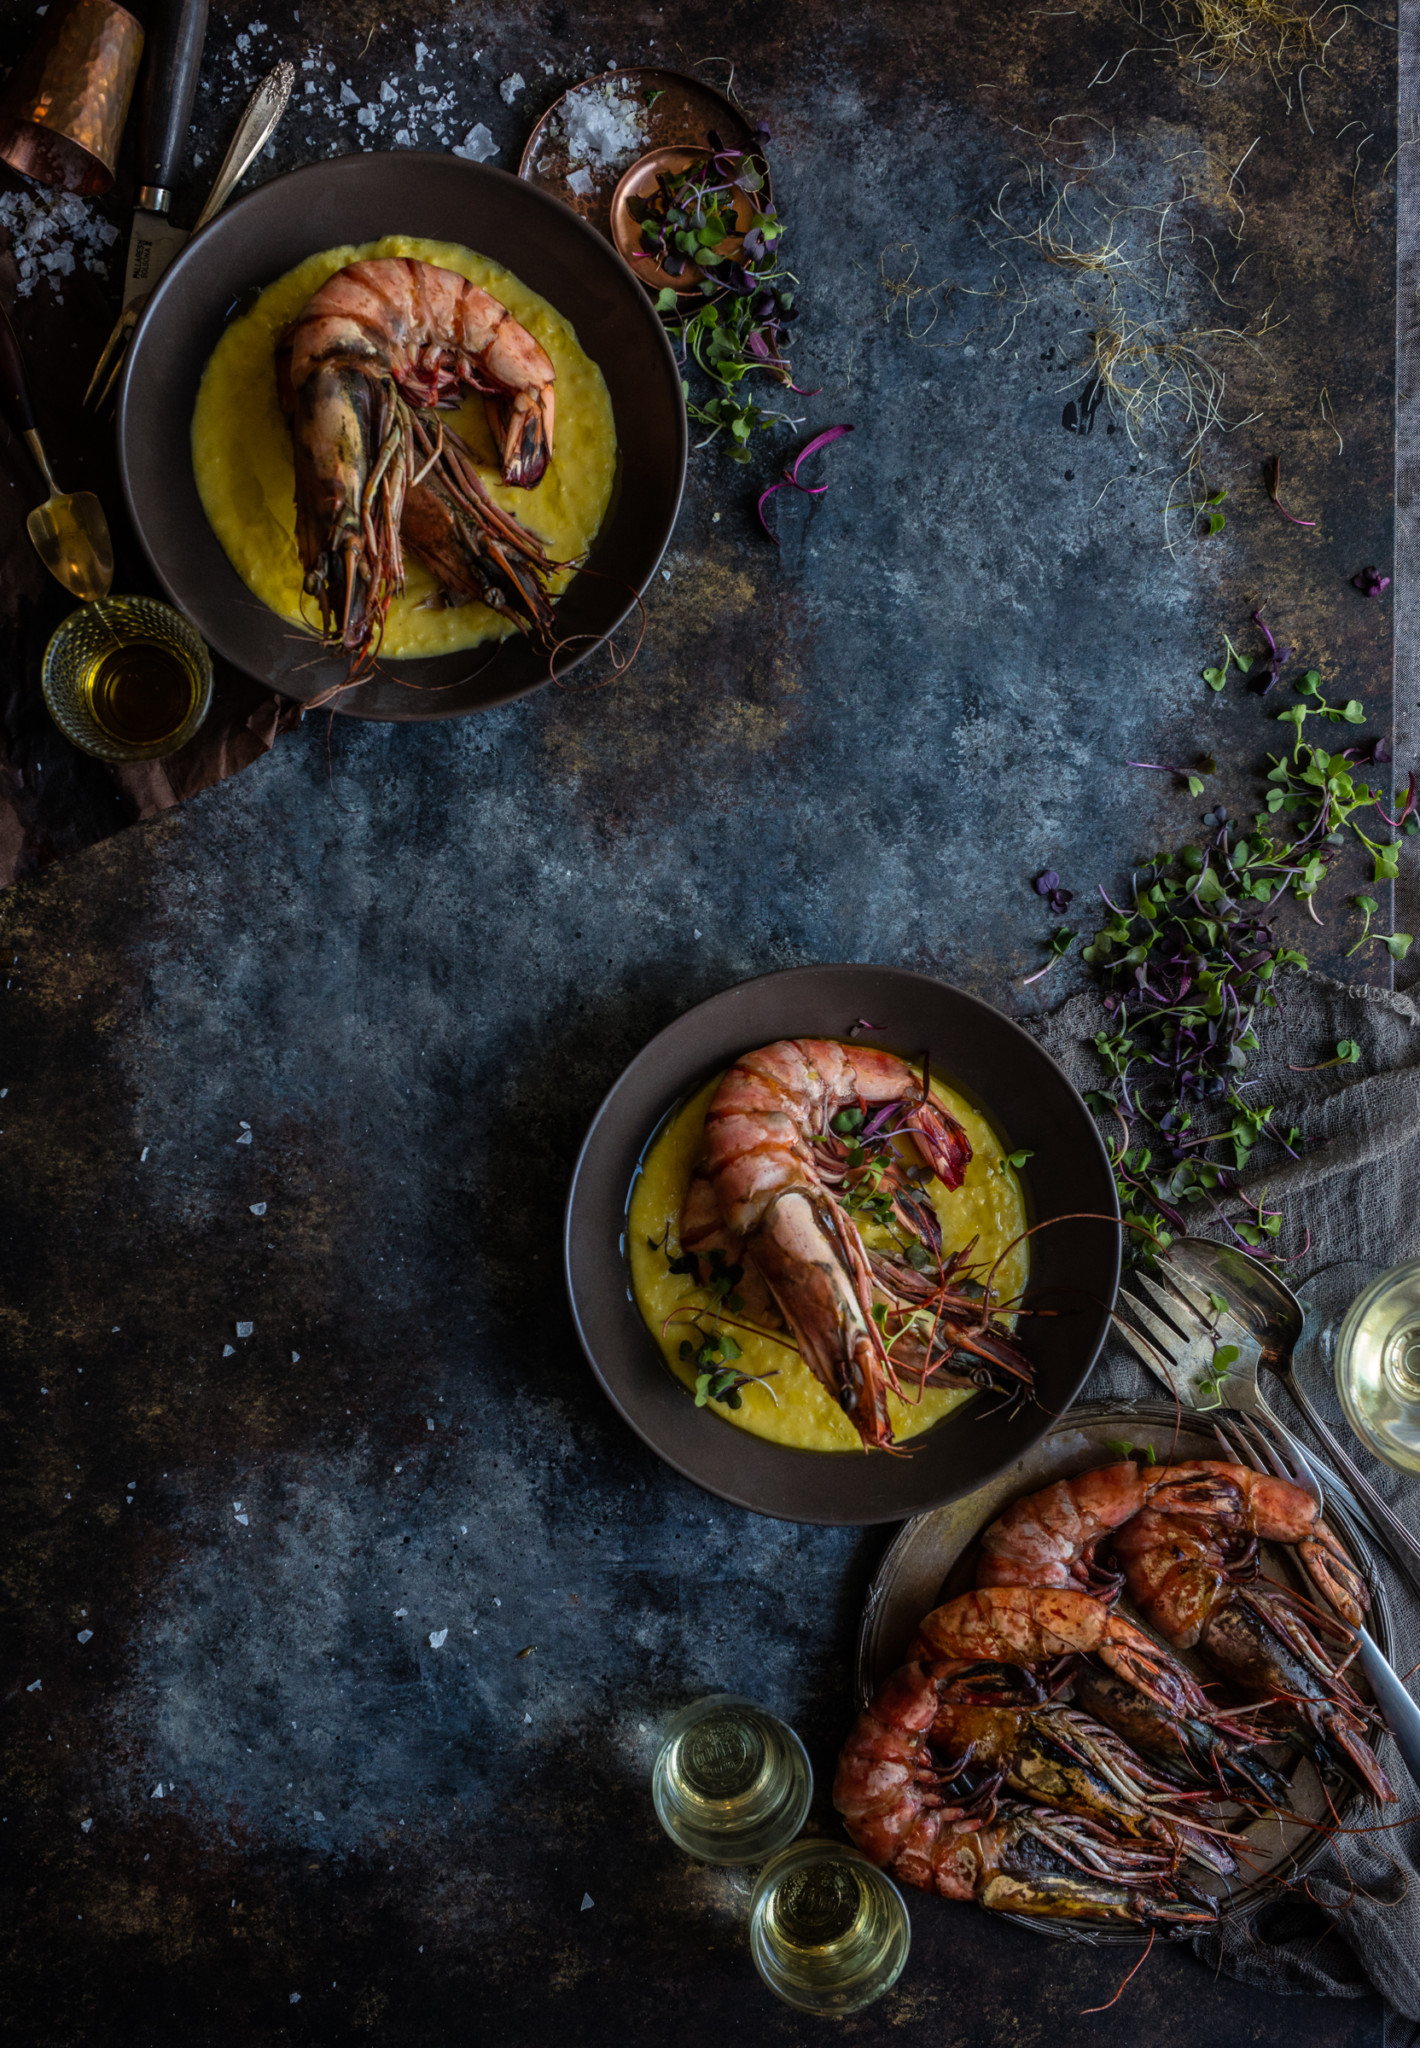 large prawns with corn in elegant food styling